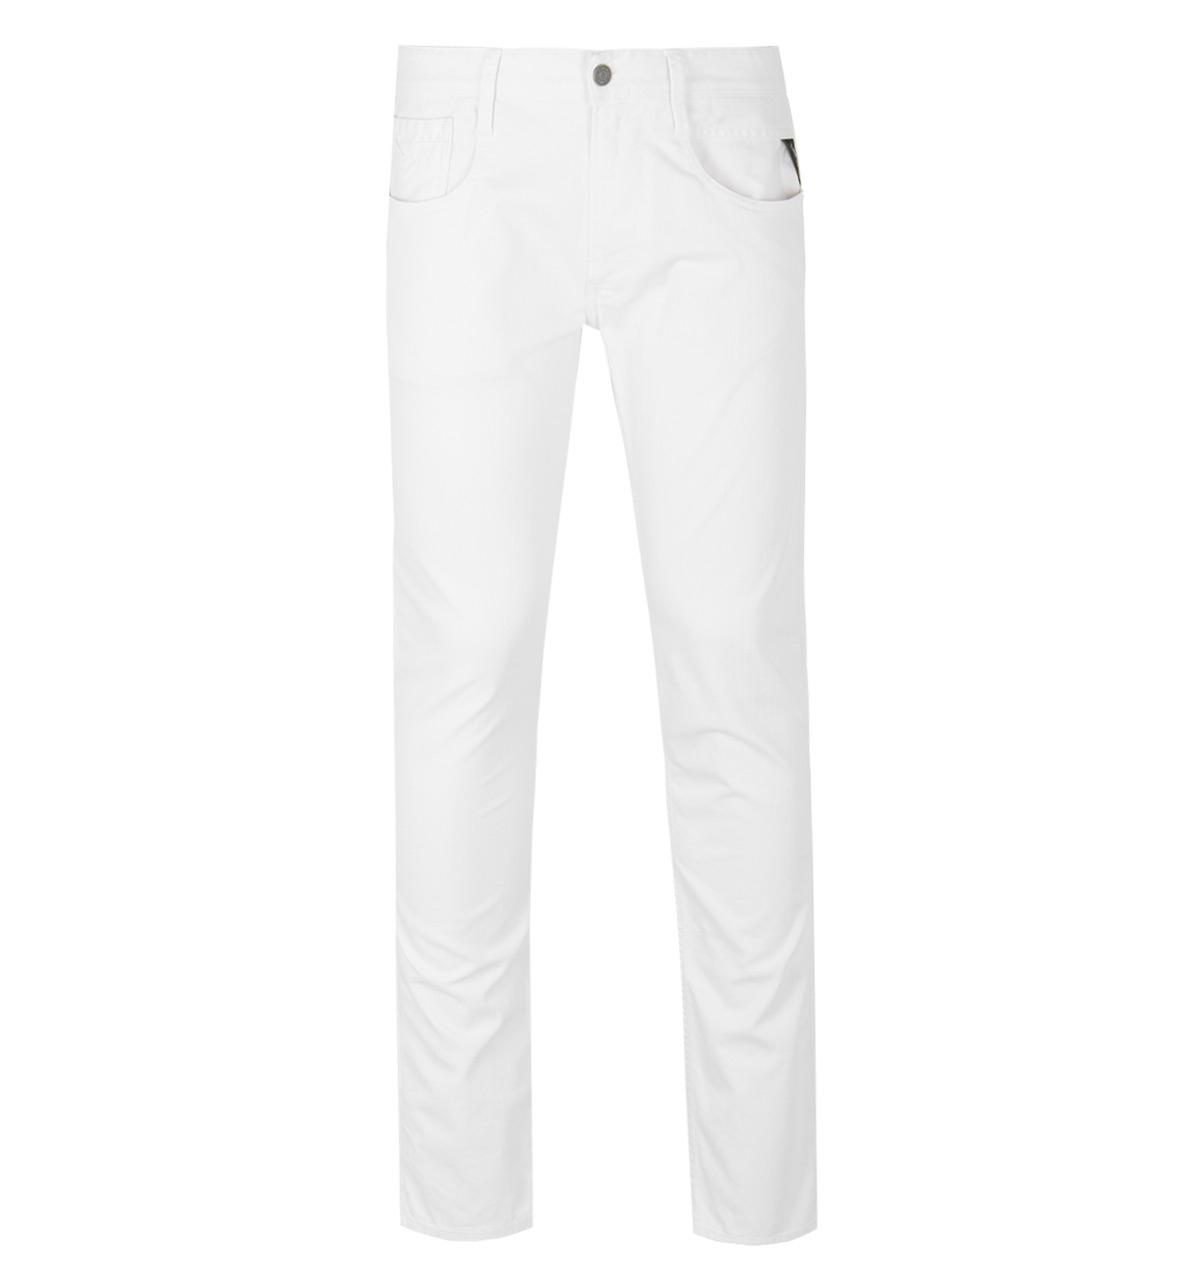 ea16040f873a82 Replay Anbass White Slim Fit Jeans in White for Men - Lyst